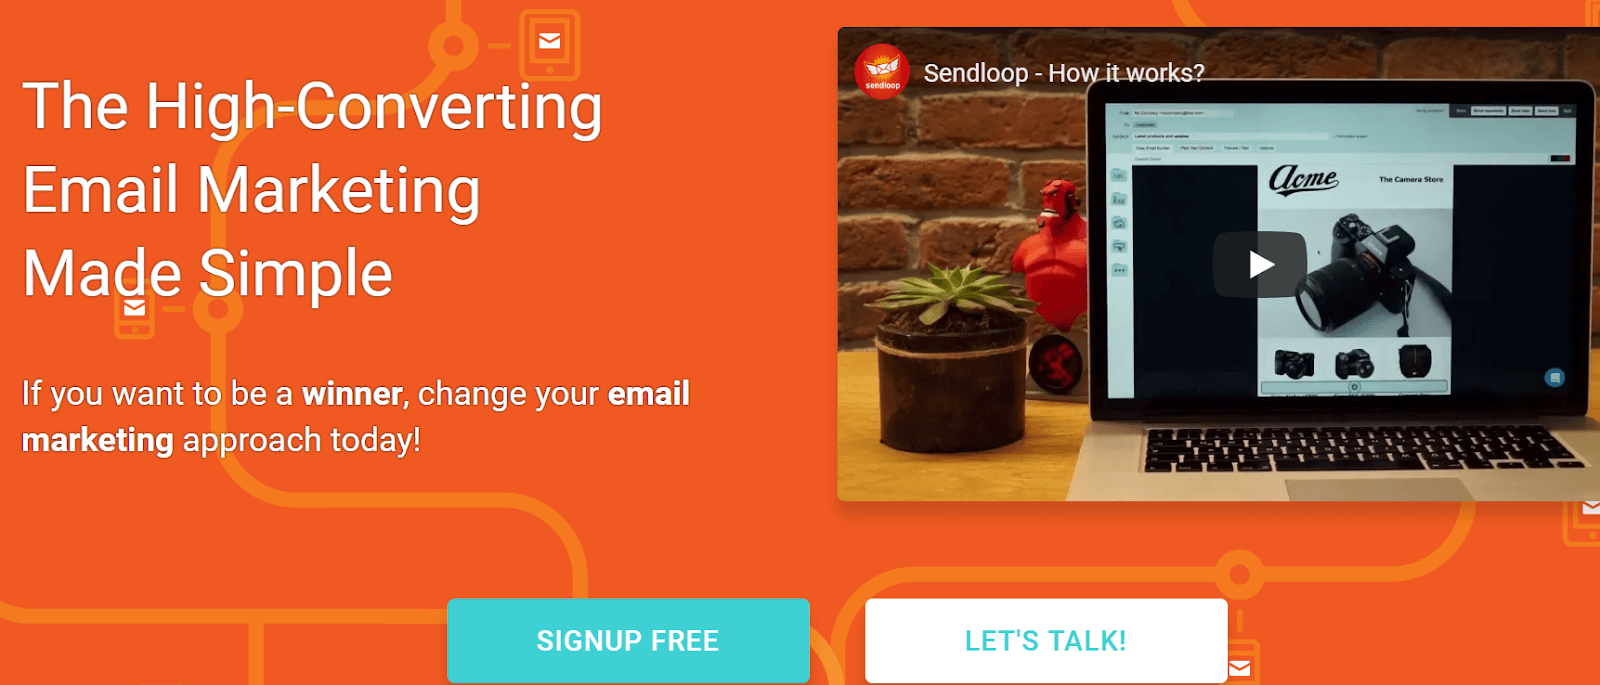 Sendloop Email Marketing Tools